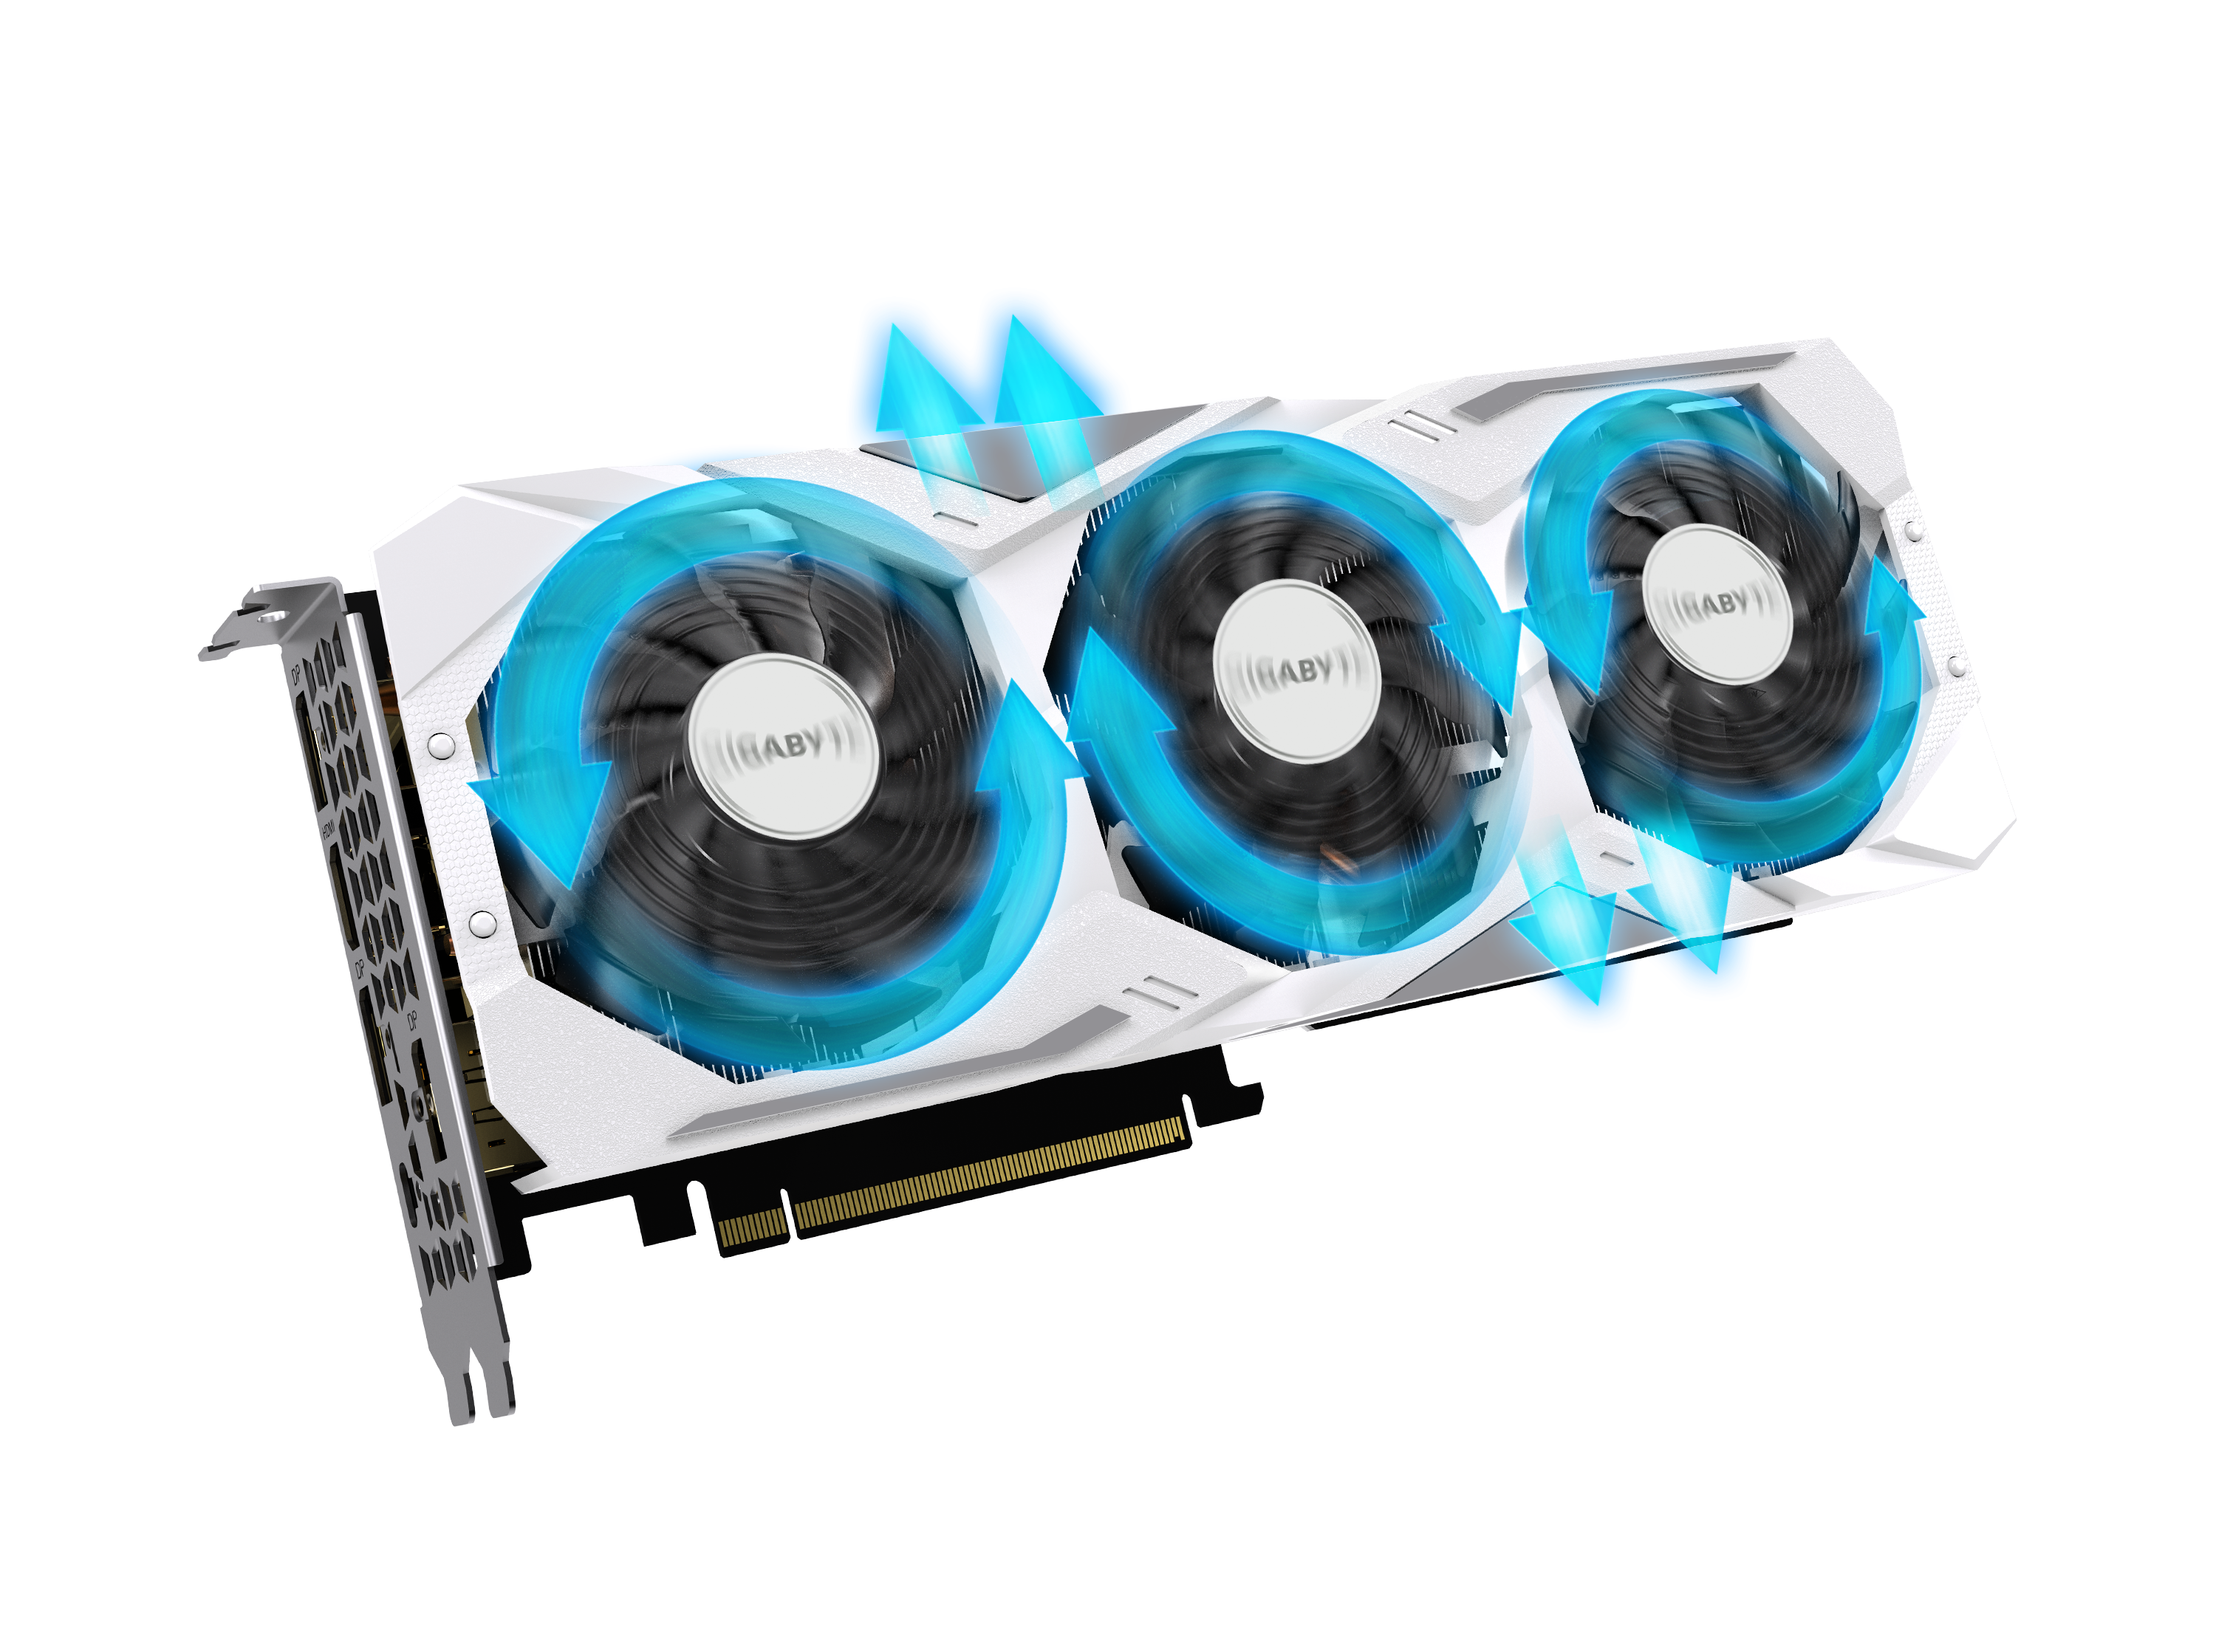 GIGABYTE GeForce RTX 2070 Graphics Card Angled Up to the Right with Blue Arrow Graphics showing fan spinning and the resulting airflow directions